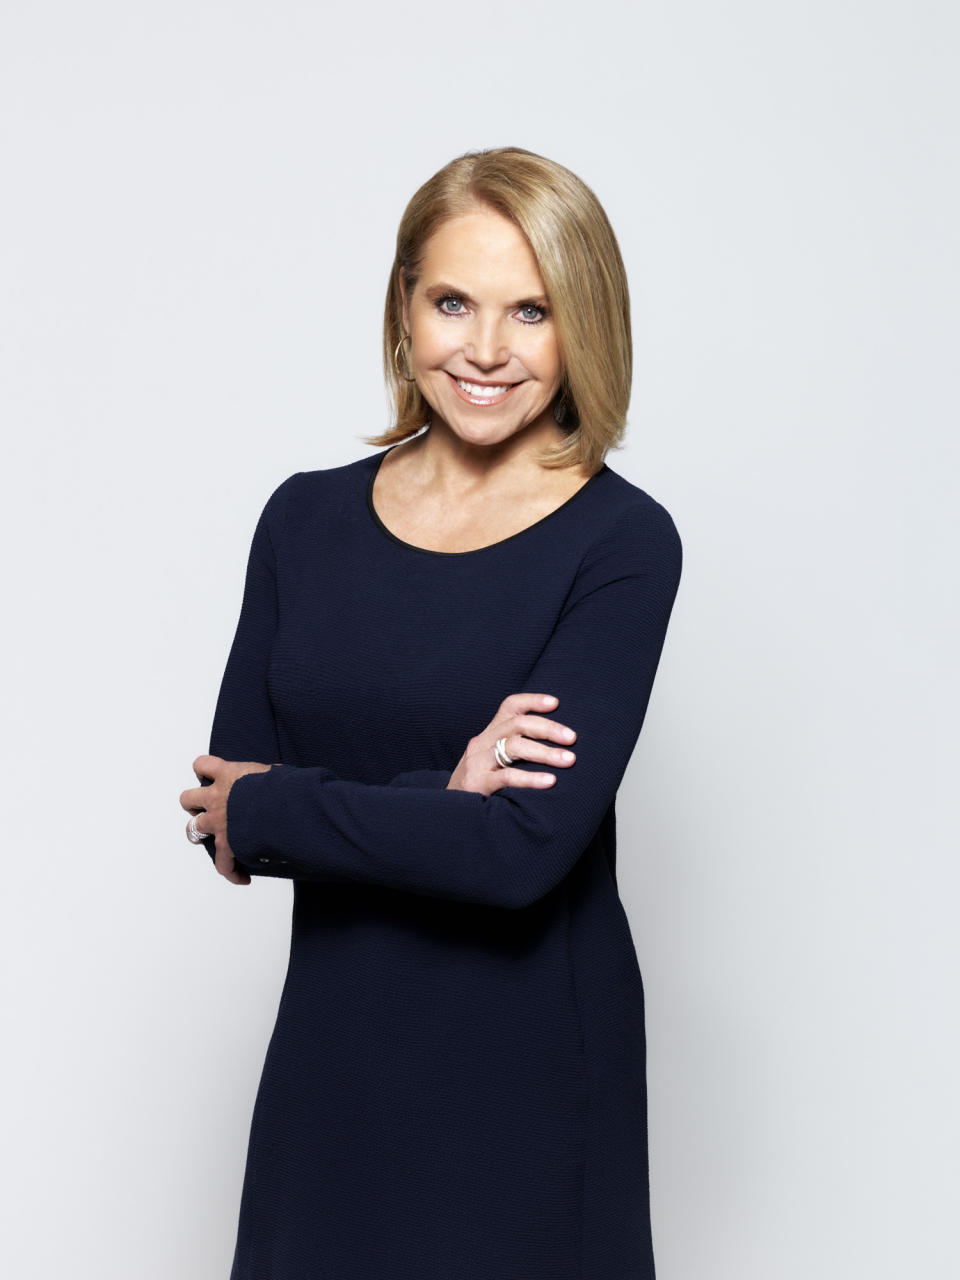 Katie Couric teams up with Jane Walker by Johnnie Walker for First Women campaign celebrating and inspiring women breaking boundaries.